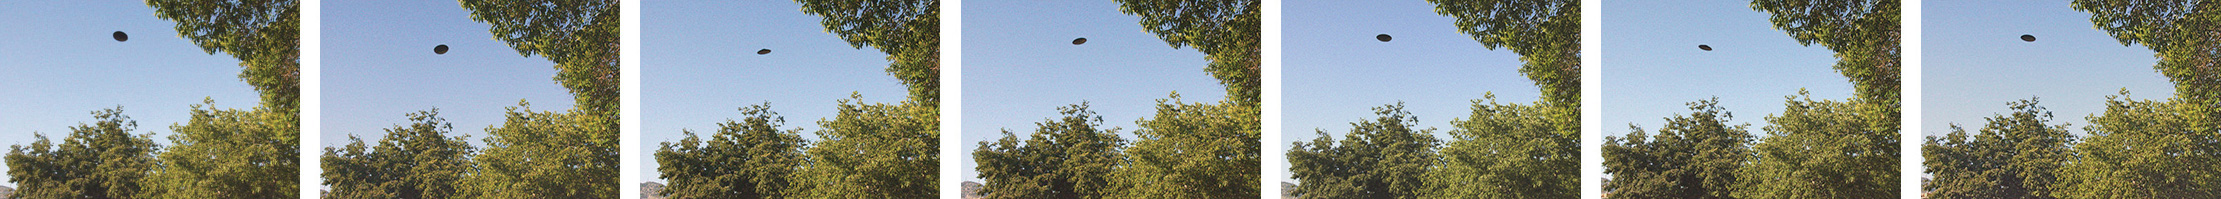 unidentified.flying.objects.12